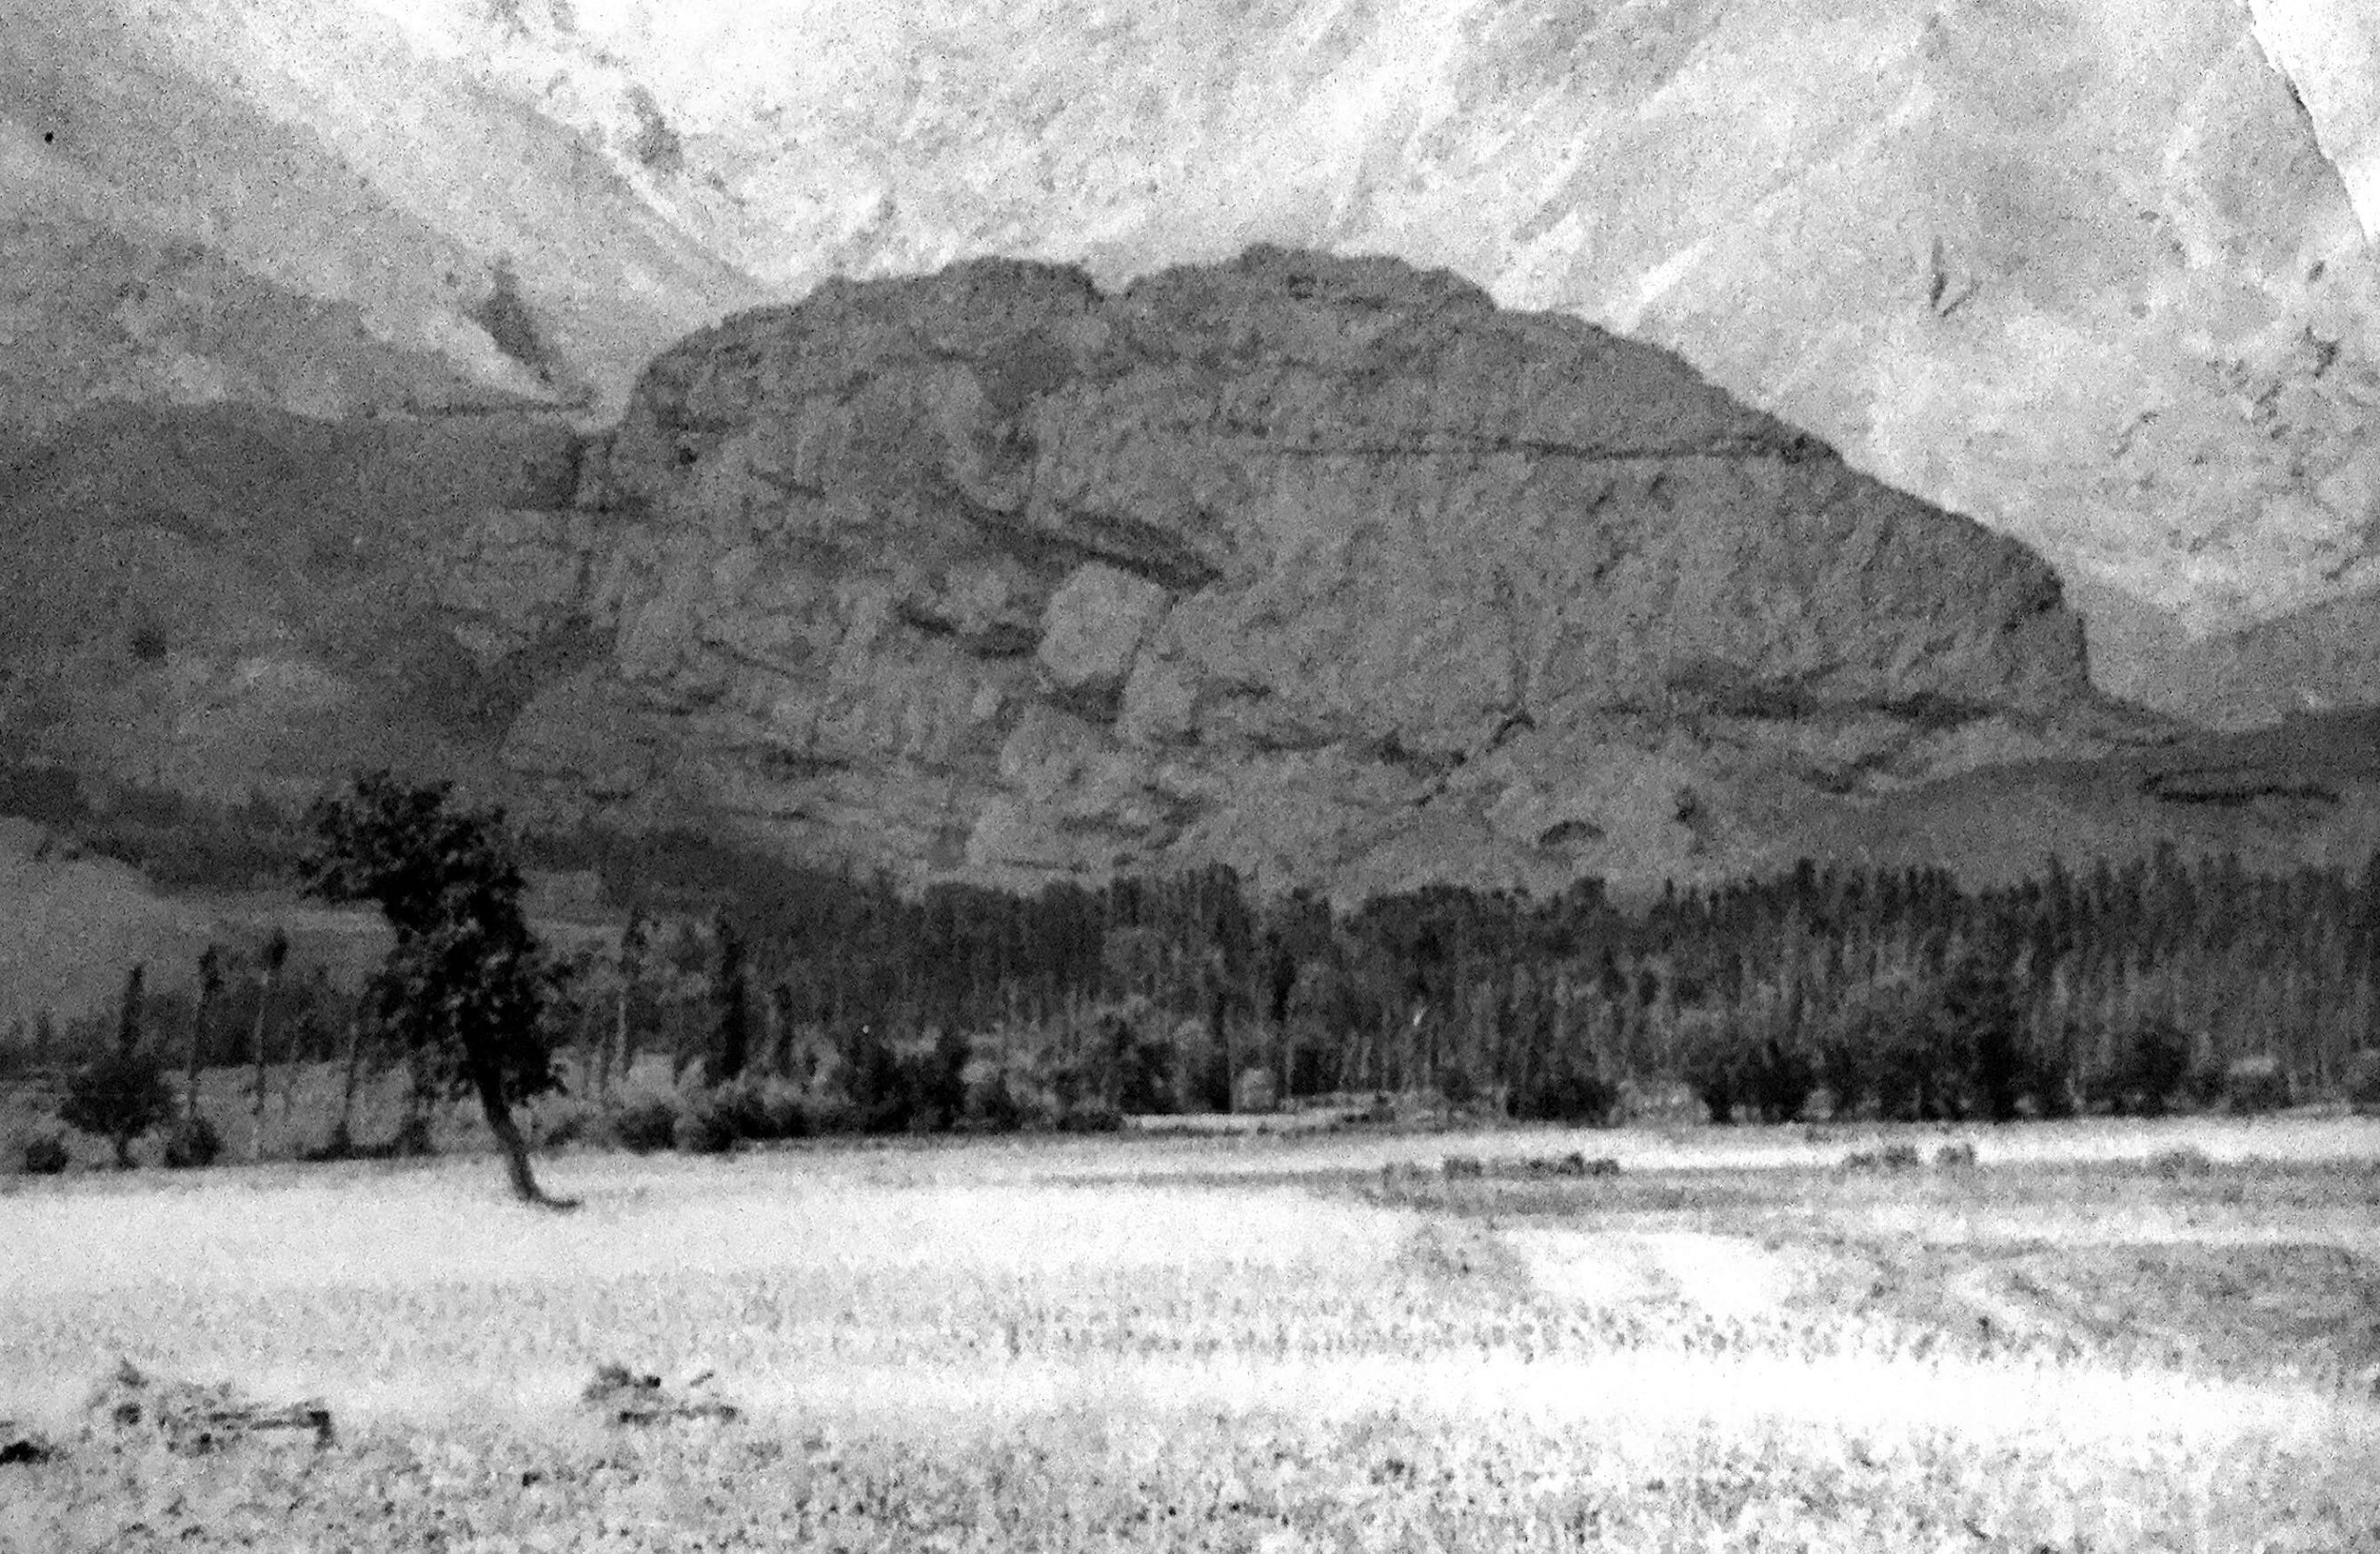 The rock on which Alamut sits is impressive seen from the plain beneath (already 2,000m above sea level),even in this grainy scan from a 1978 photo.